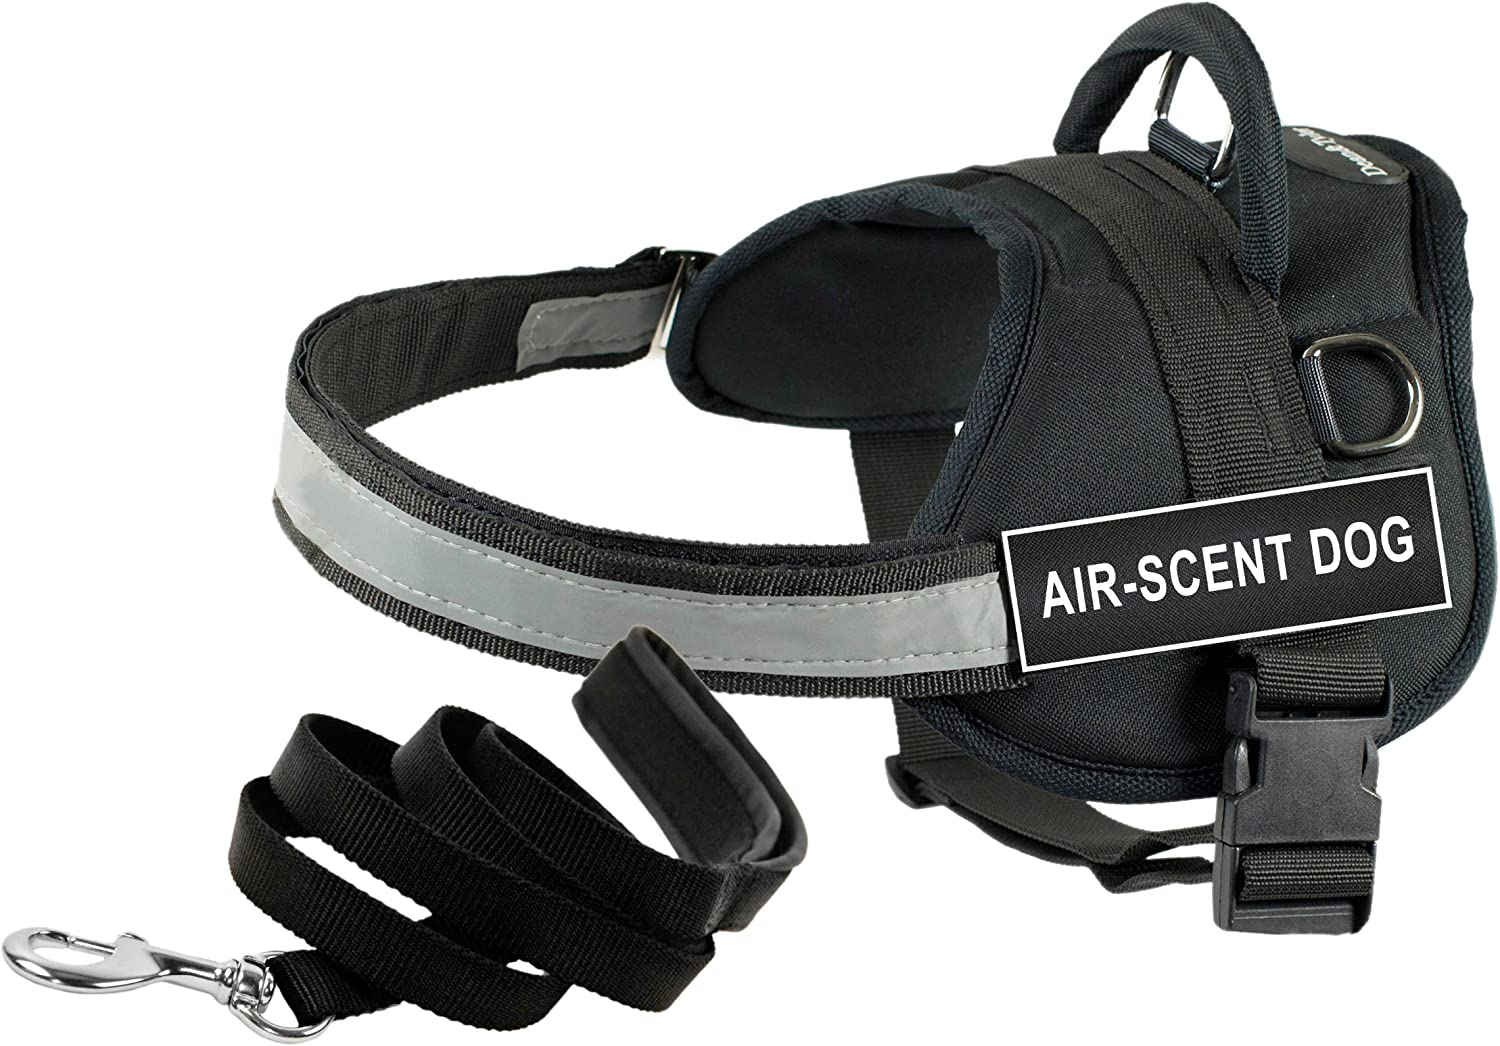 Dean & Tyler's DT Works AIRSCENT DOG Harness, XSmall, with 6 ft Padded Puppy Leash.